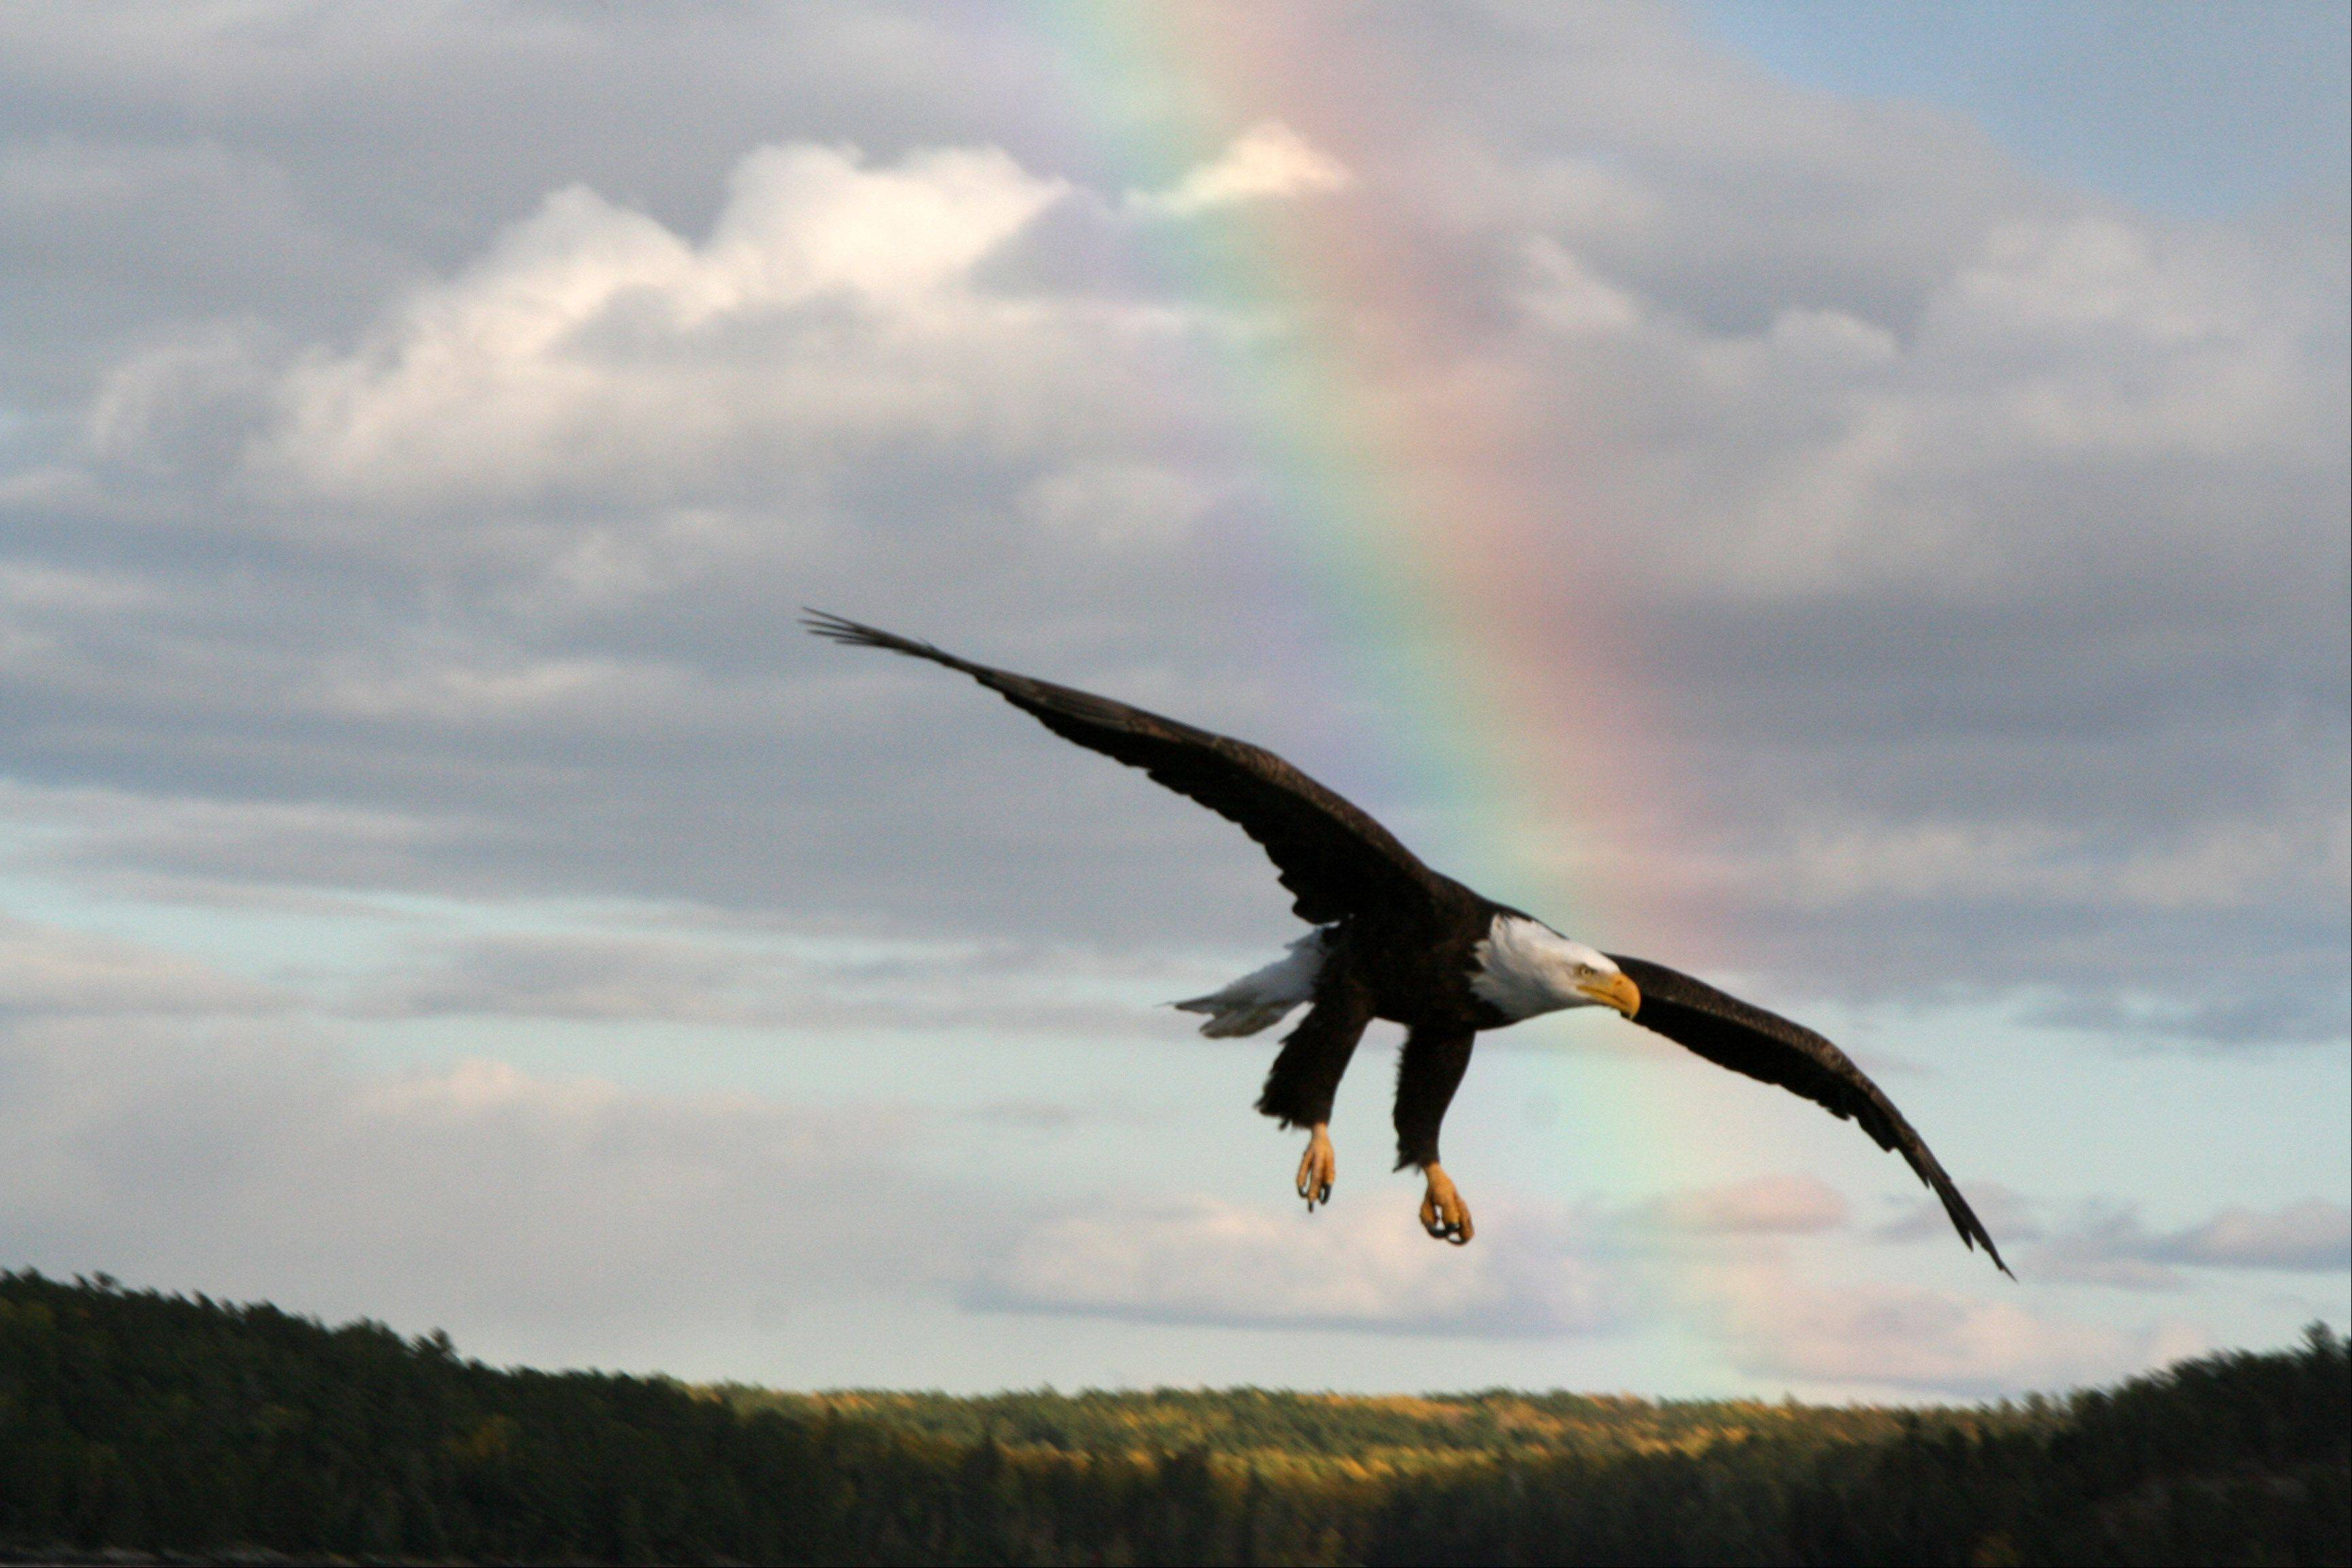 This photo of a bald eagle with rainbow in the background was taken in Lake of the Woods, Ontario, Canada. I took it while fishing on Lake of the Woods Lake. This area is near Nester Falls Ontario, Canada.